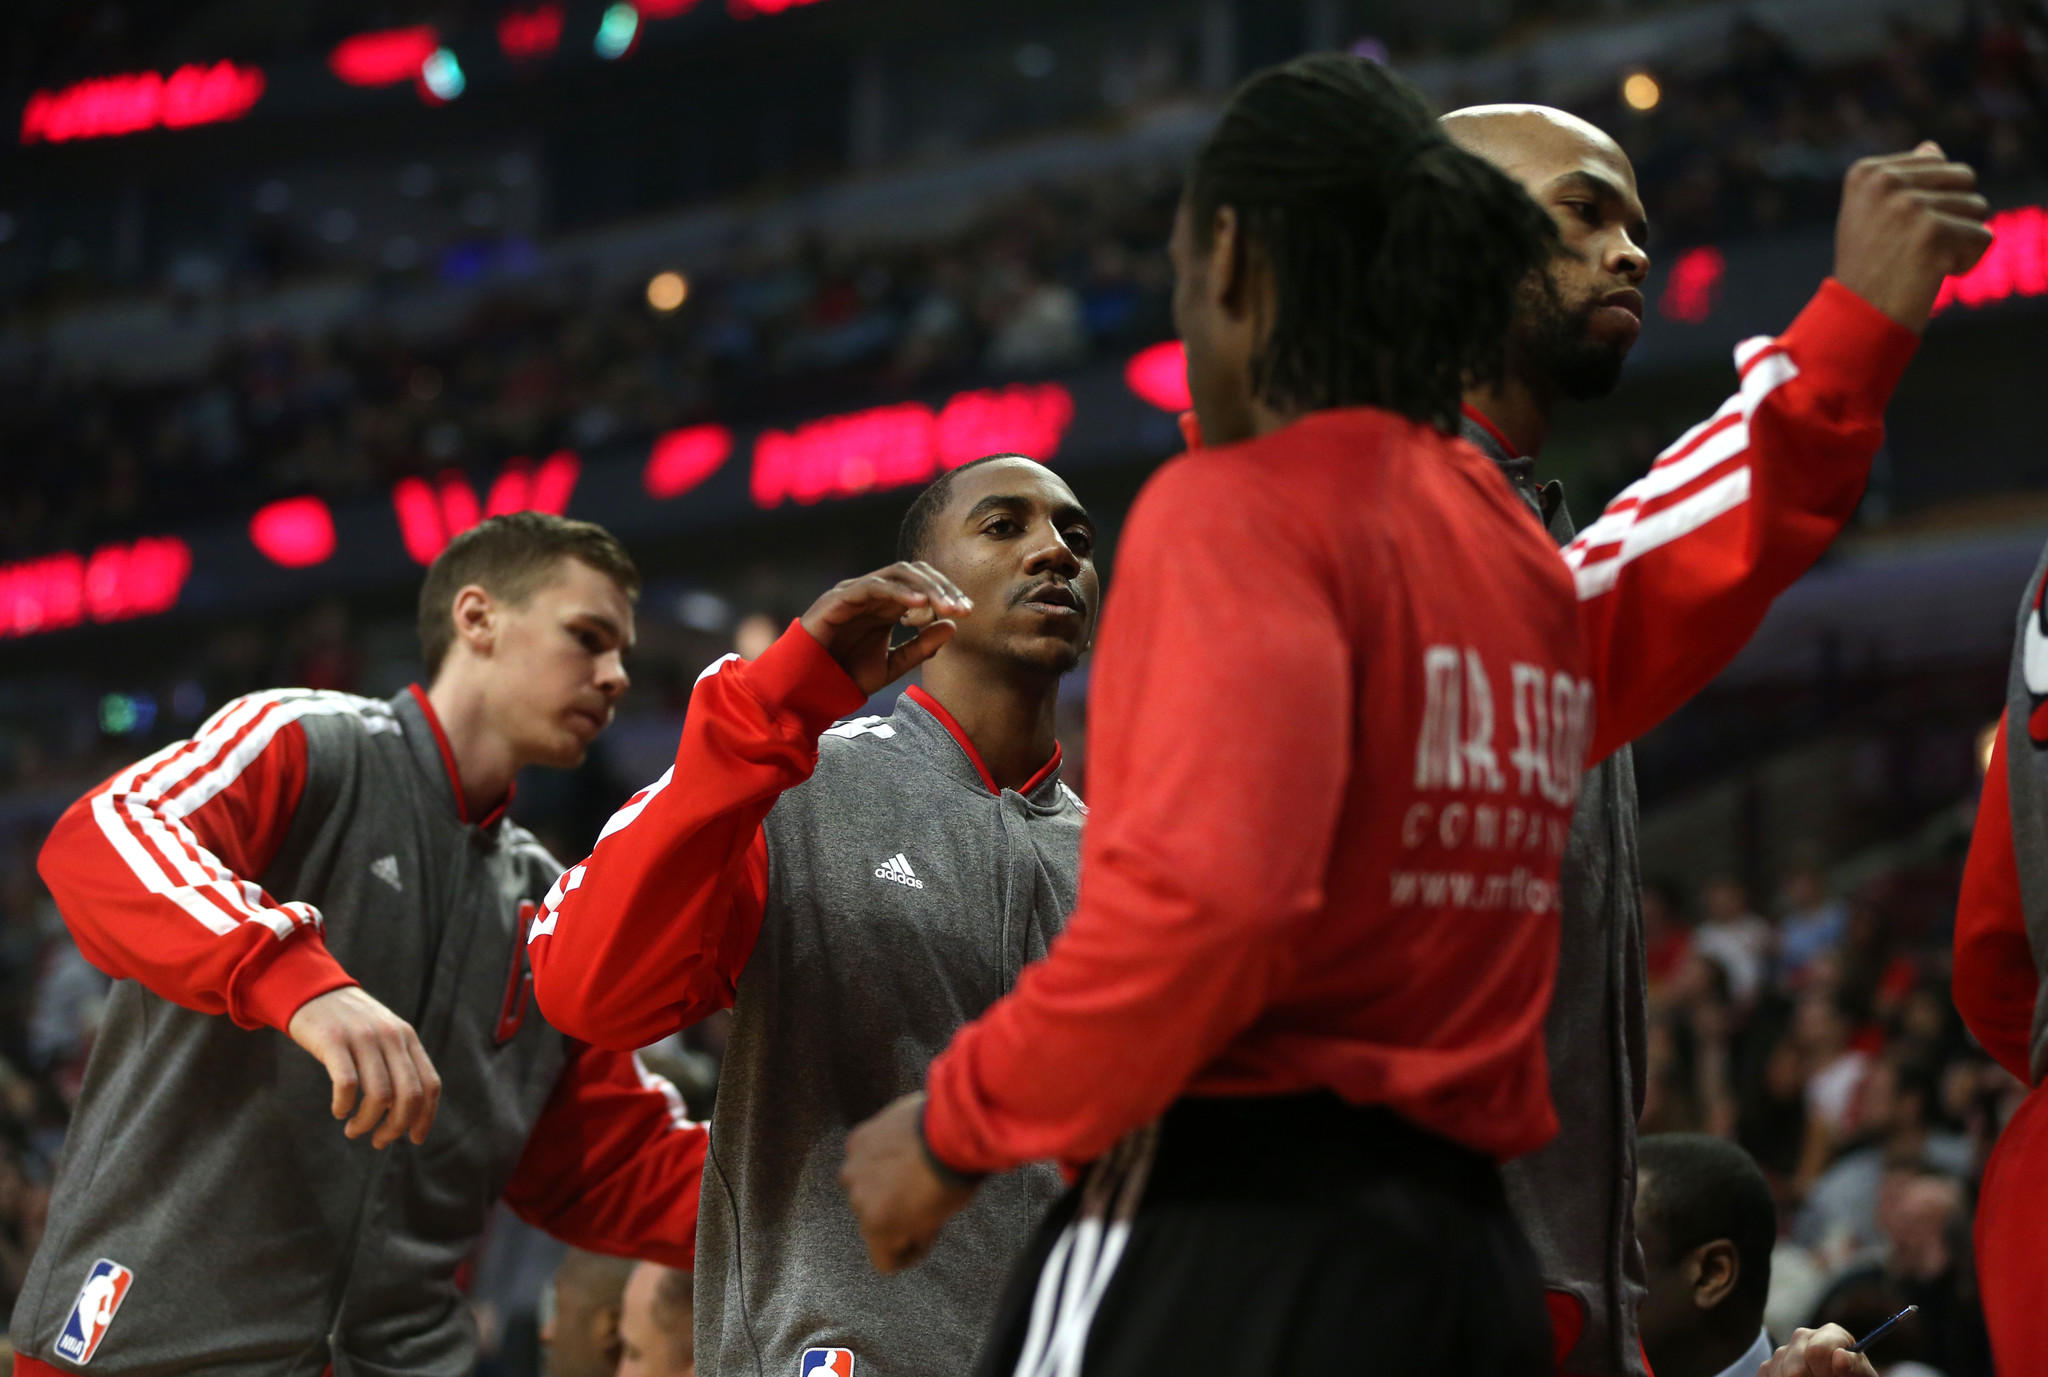 Chicago Bulls point guard Marquis Teague (center) walks to the bench before the start of a game at the United Center.